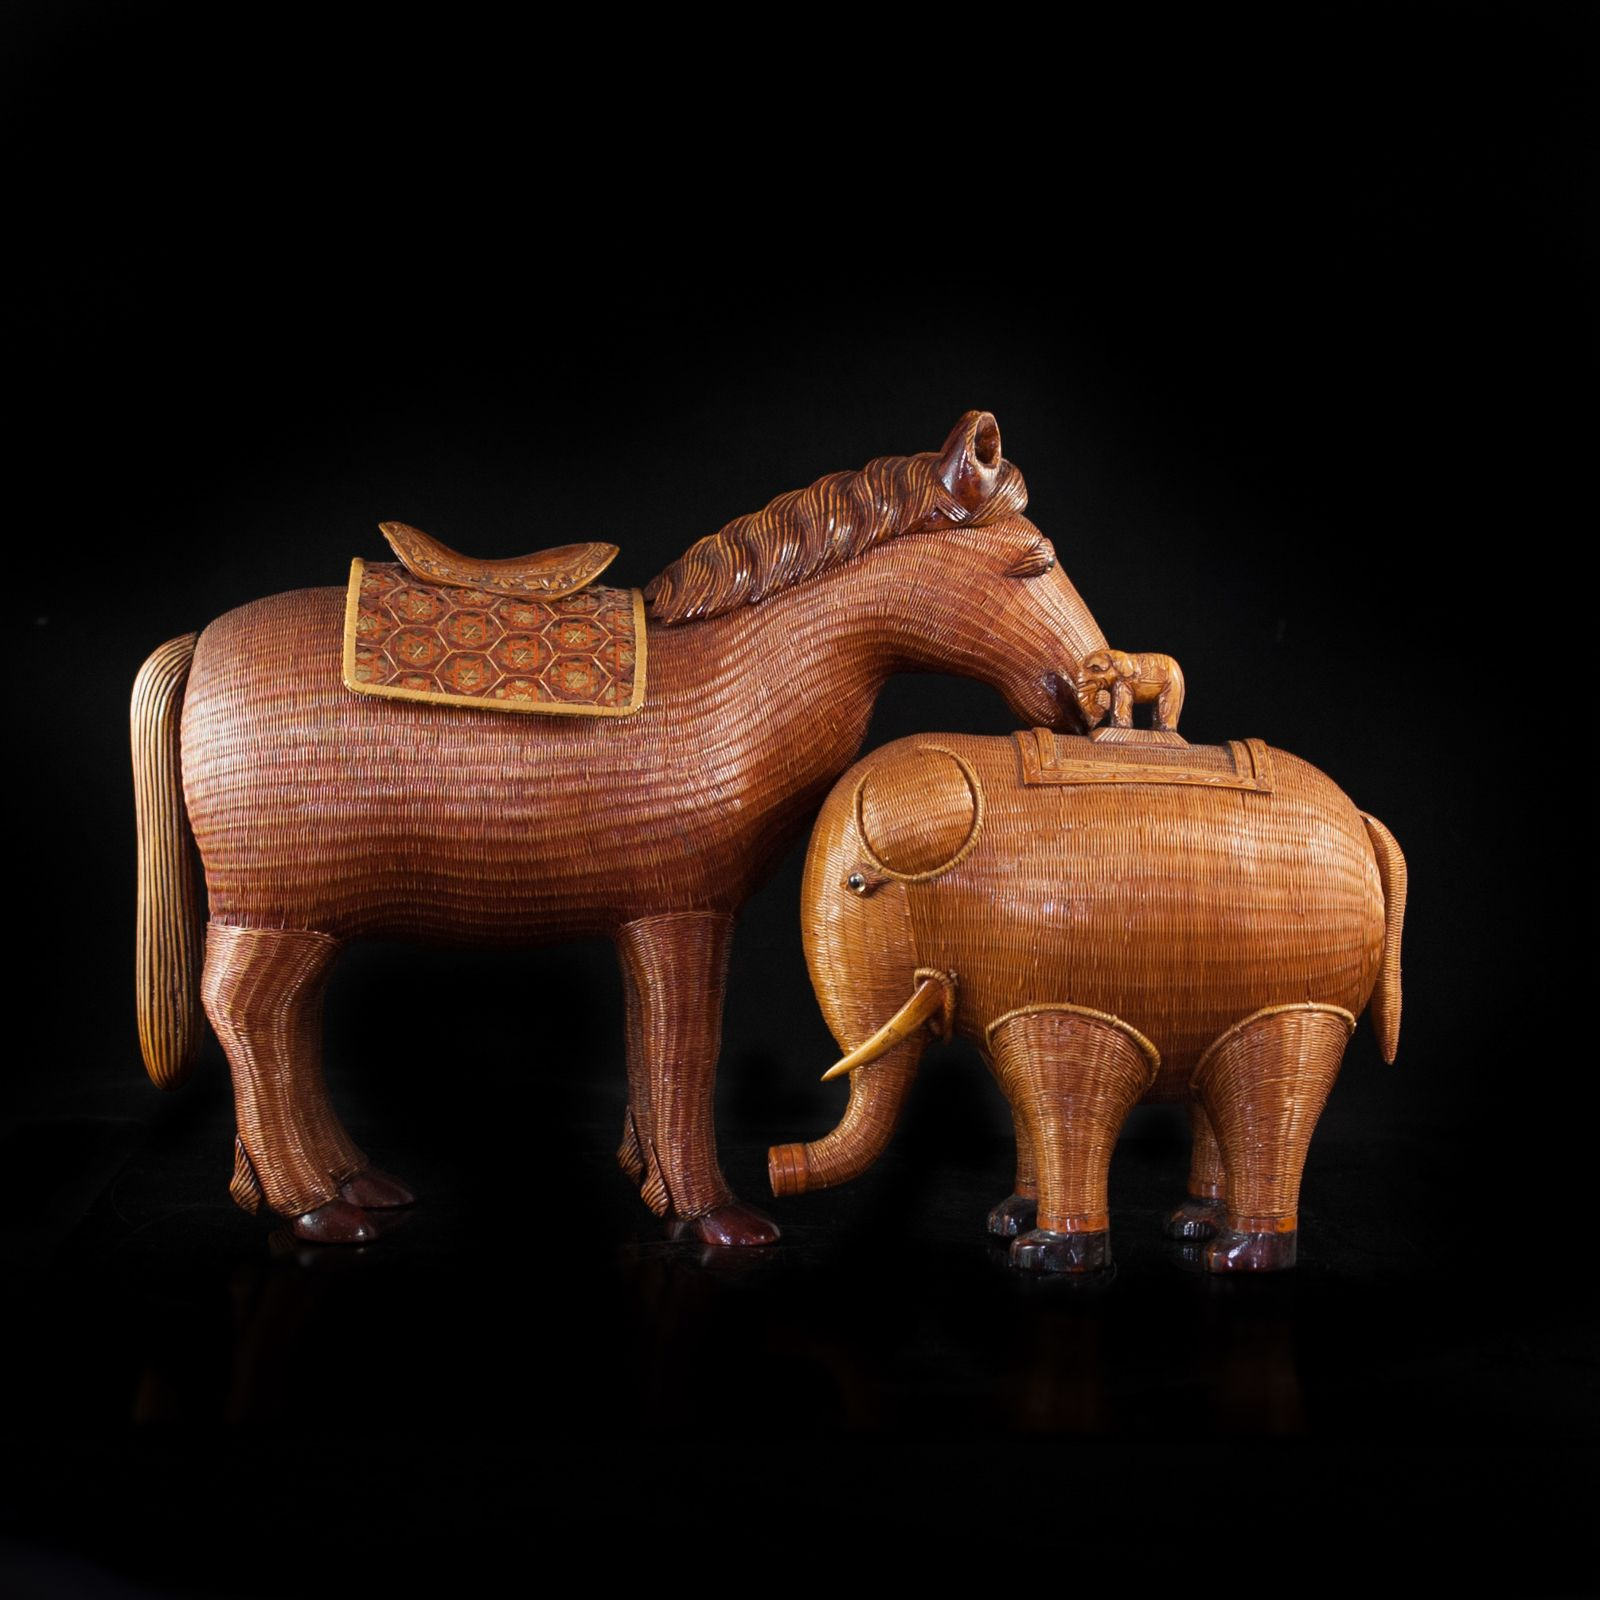 Lot #219: Chinese Wicker Figurines DESCRIPTION: Chinese hand made wicker figurines depicting an elephant and horse, each figurine opens revealing a ceramic interior box compartment.  CIRCA: 20th ORIGIN: China DIMENSIONS: Horse: H: 16″ L: 14″ Elephant: H: 10″ L: 10″